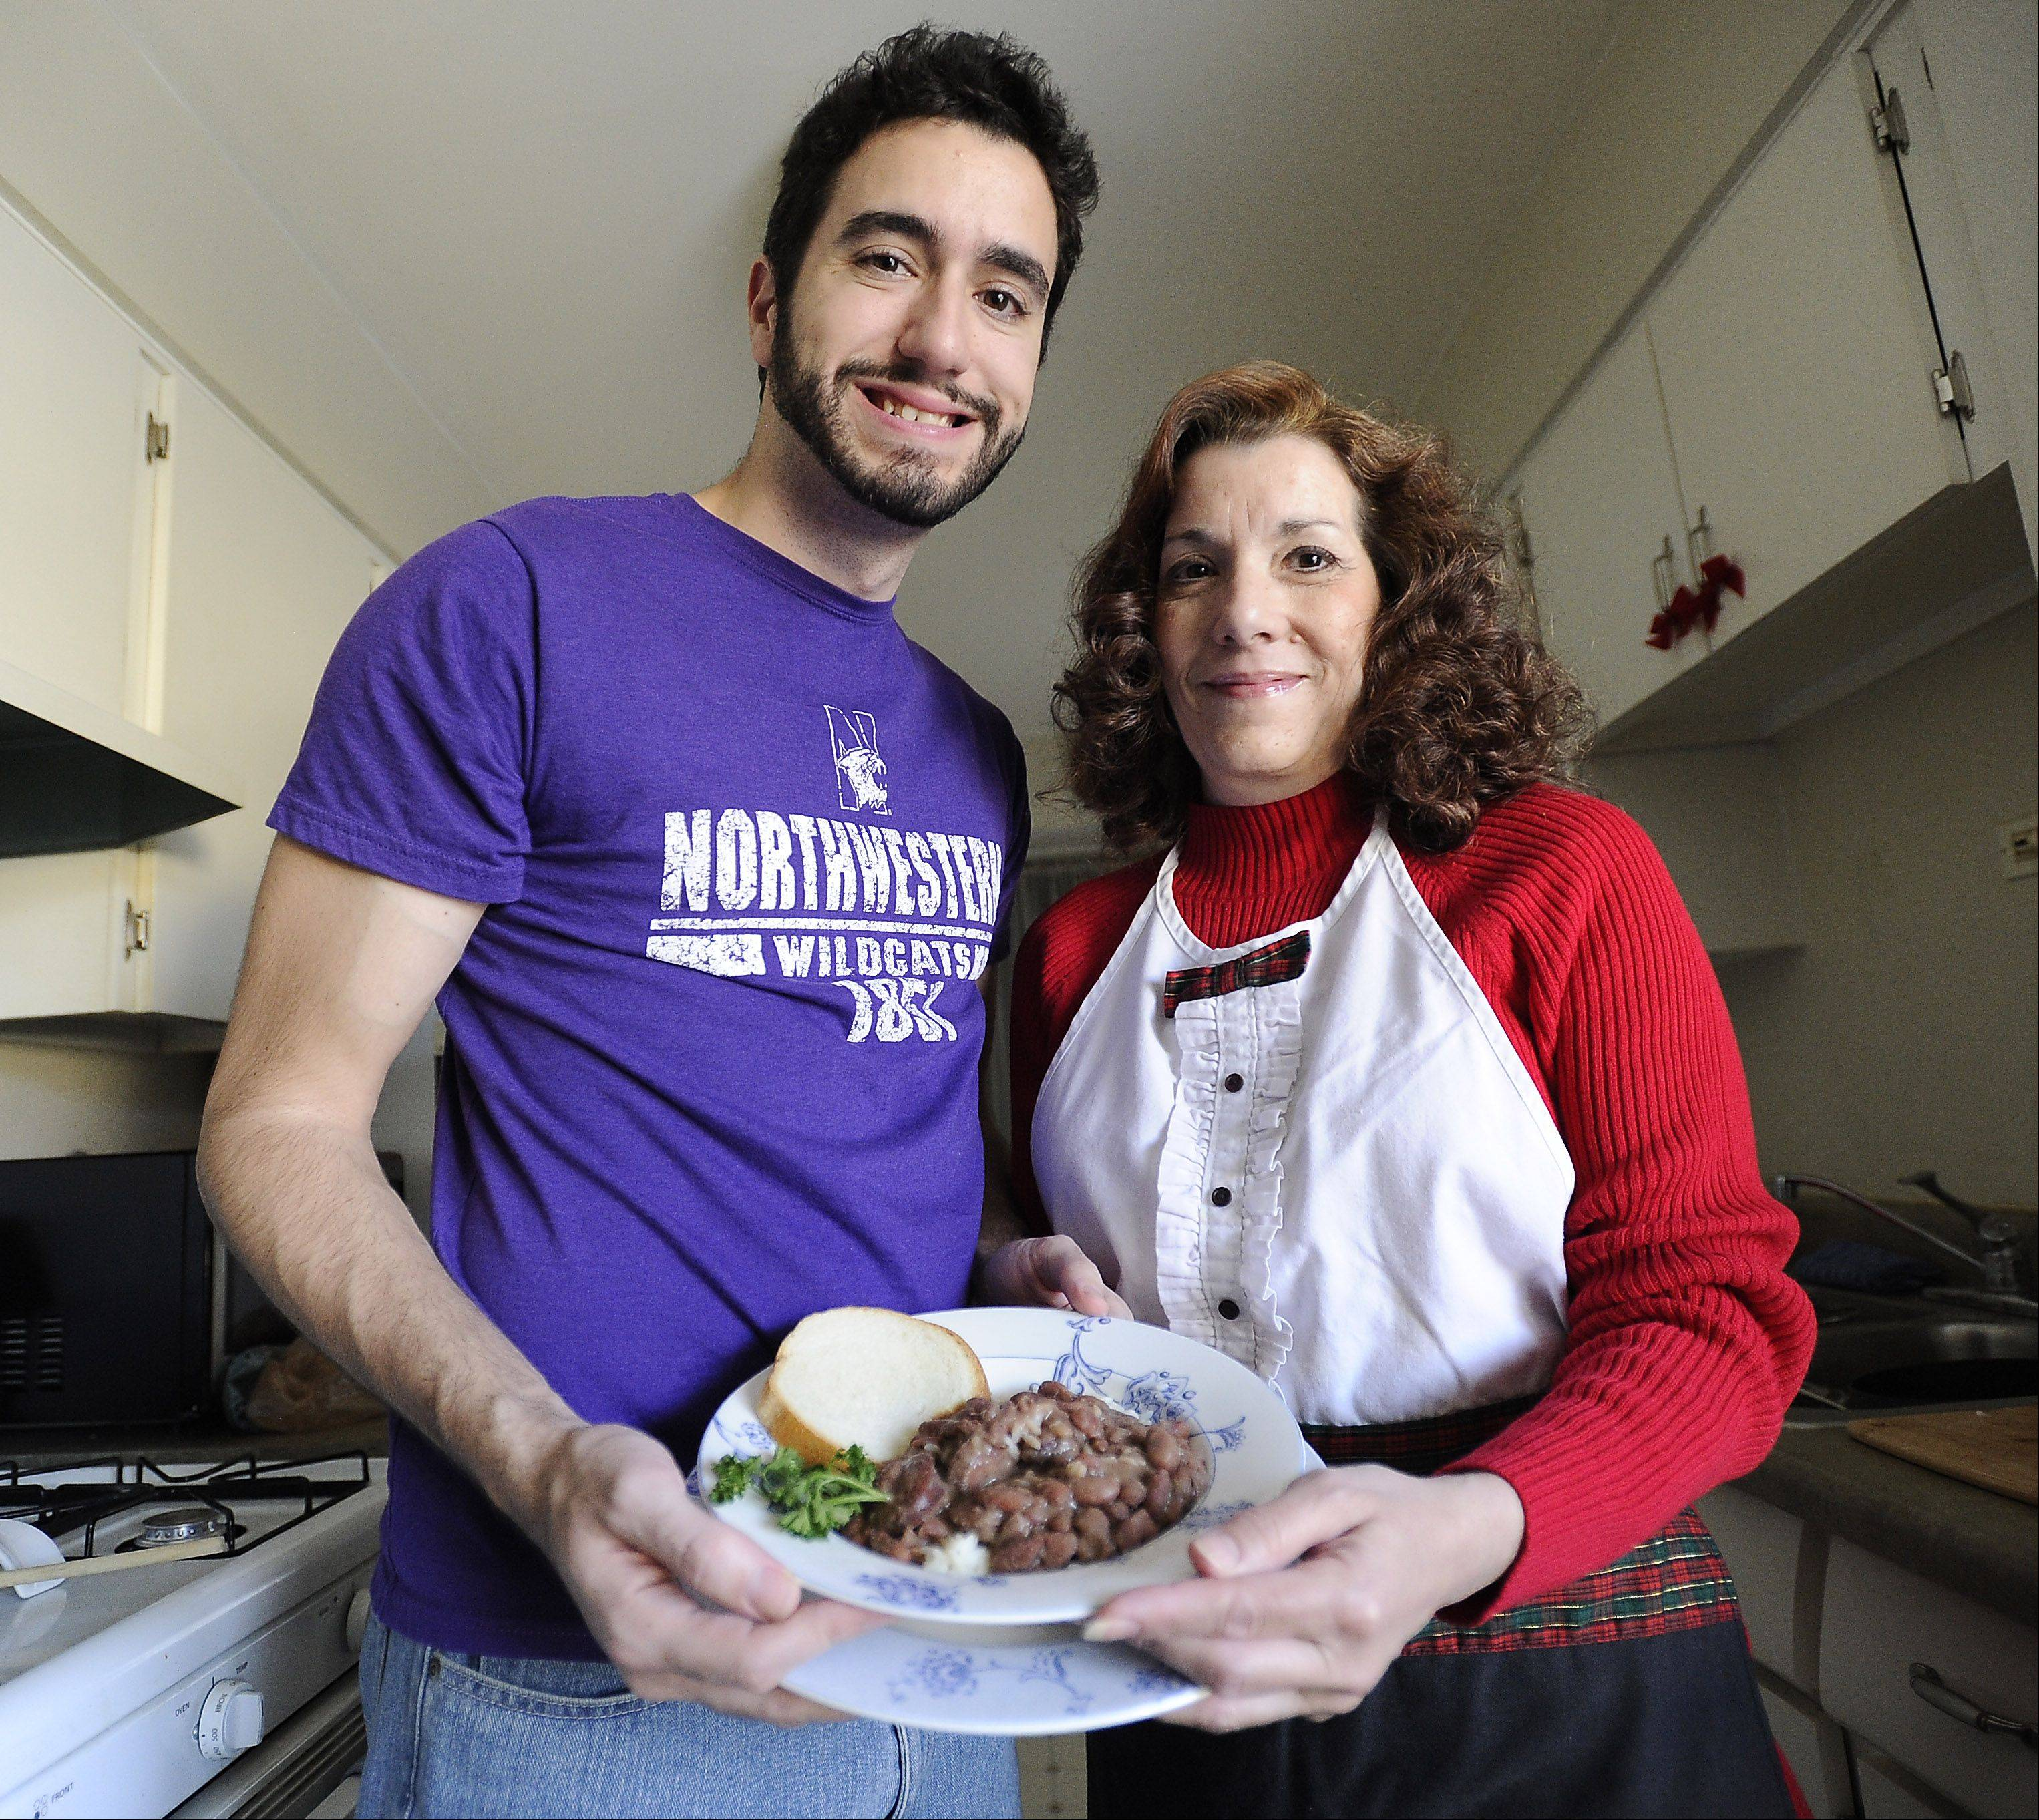 Andrew Ledet and his mom, Diane Ledet, have learned to work together in their small Elk Grove Village kitchen.